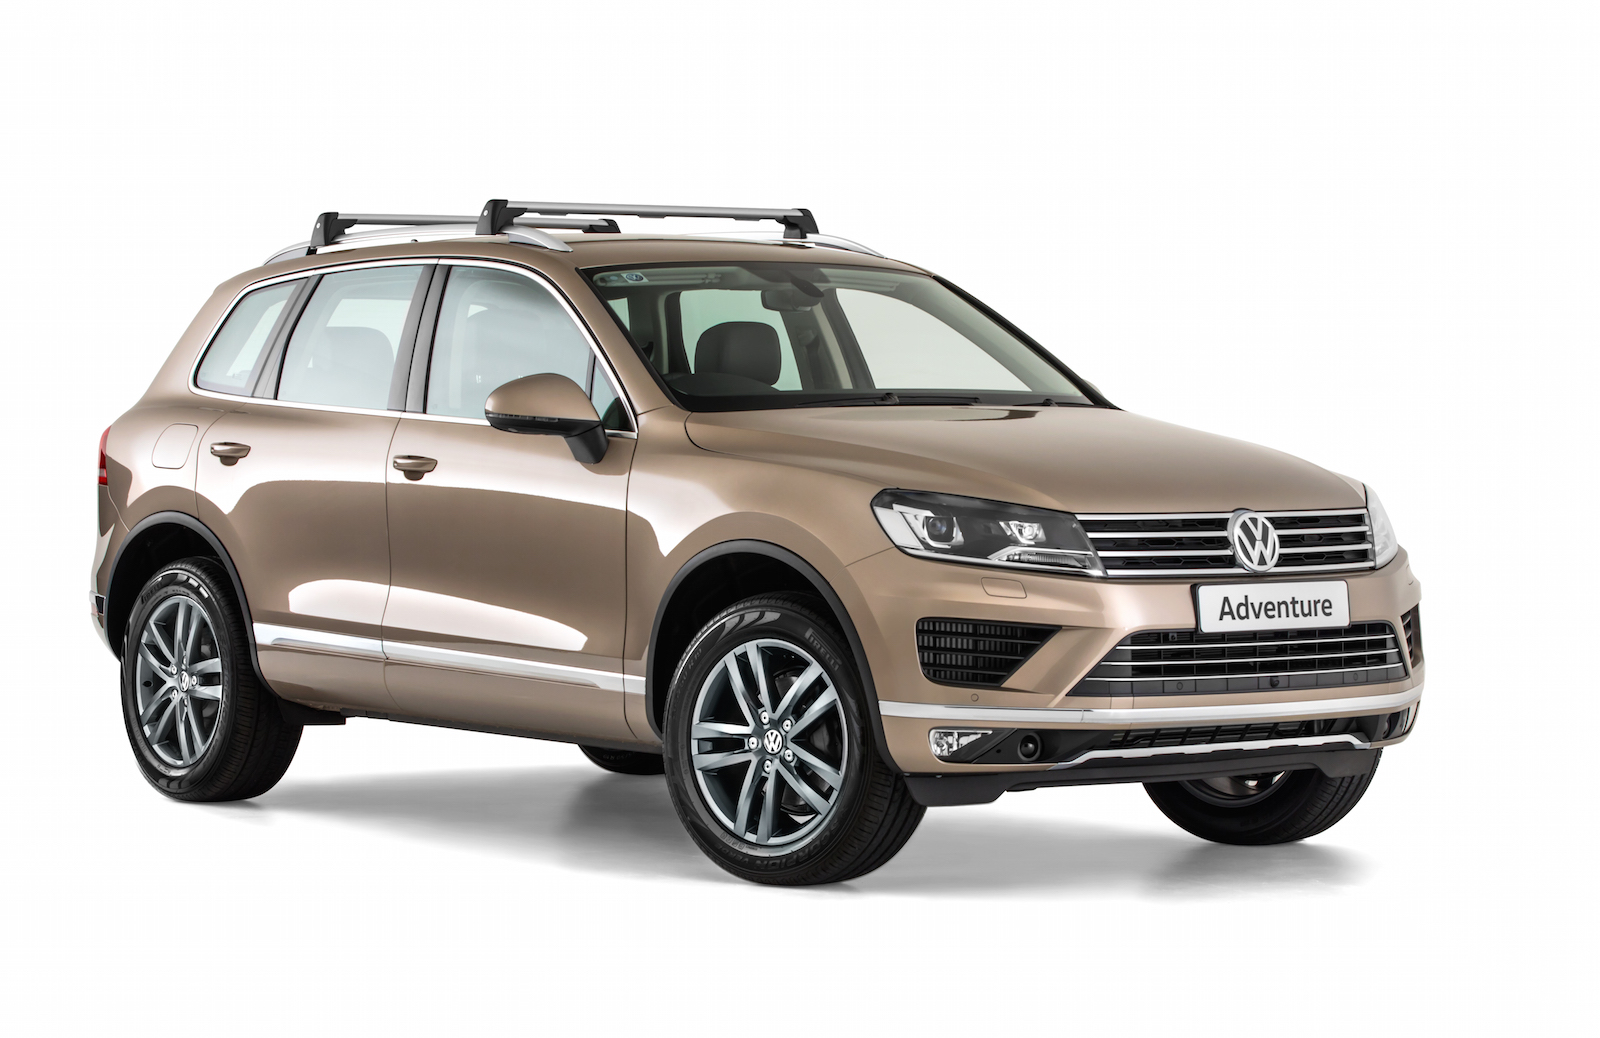 volkswagen touareg adventure edition announced for australia performancedrive. Black Bedroom Furniture Sets. Home Design Ideas